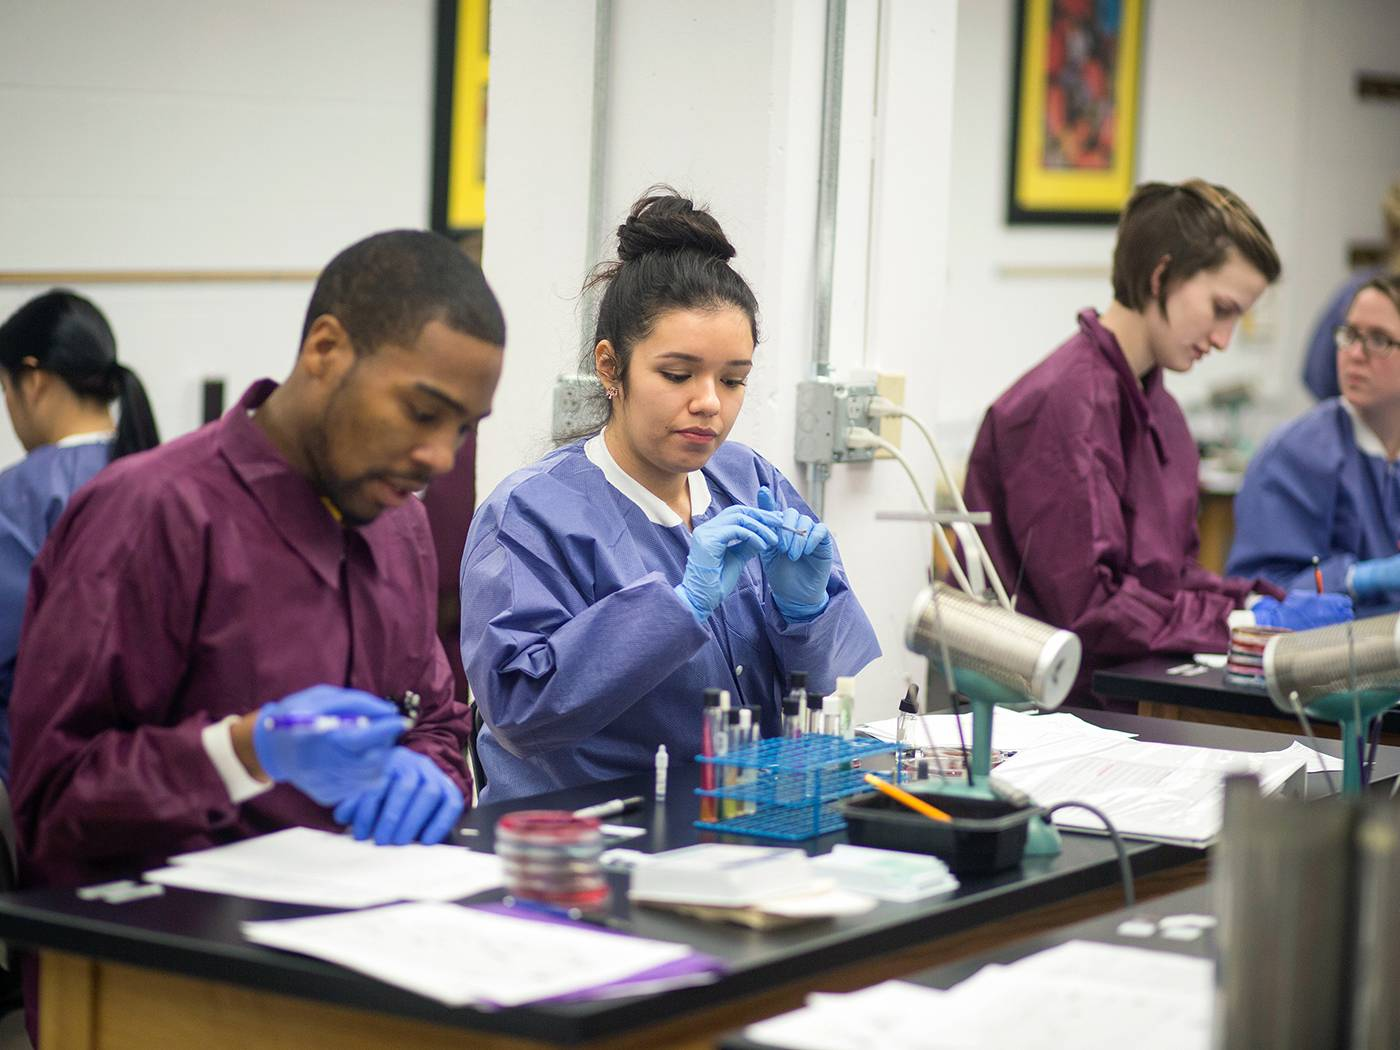 Health Professions students in clinic wearing scrubs